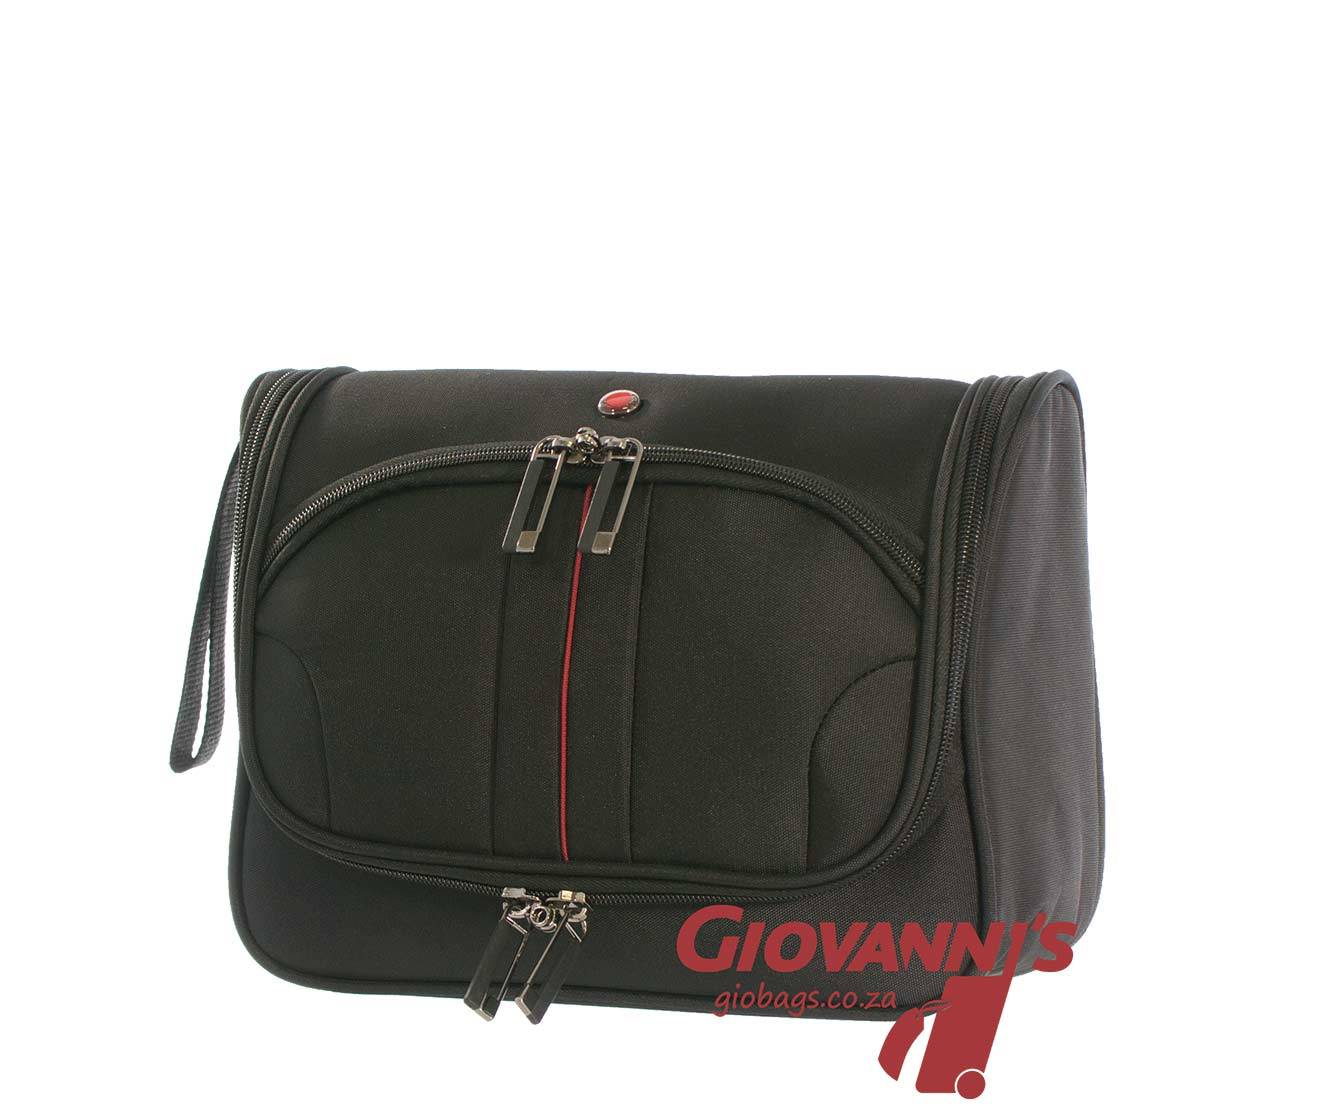 Giobags Gino De Vinci Ascent Hanging Toiletry Bag